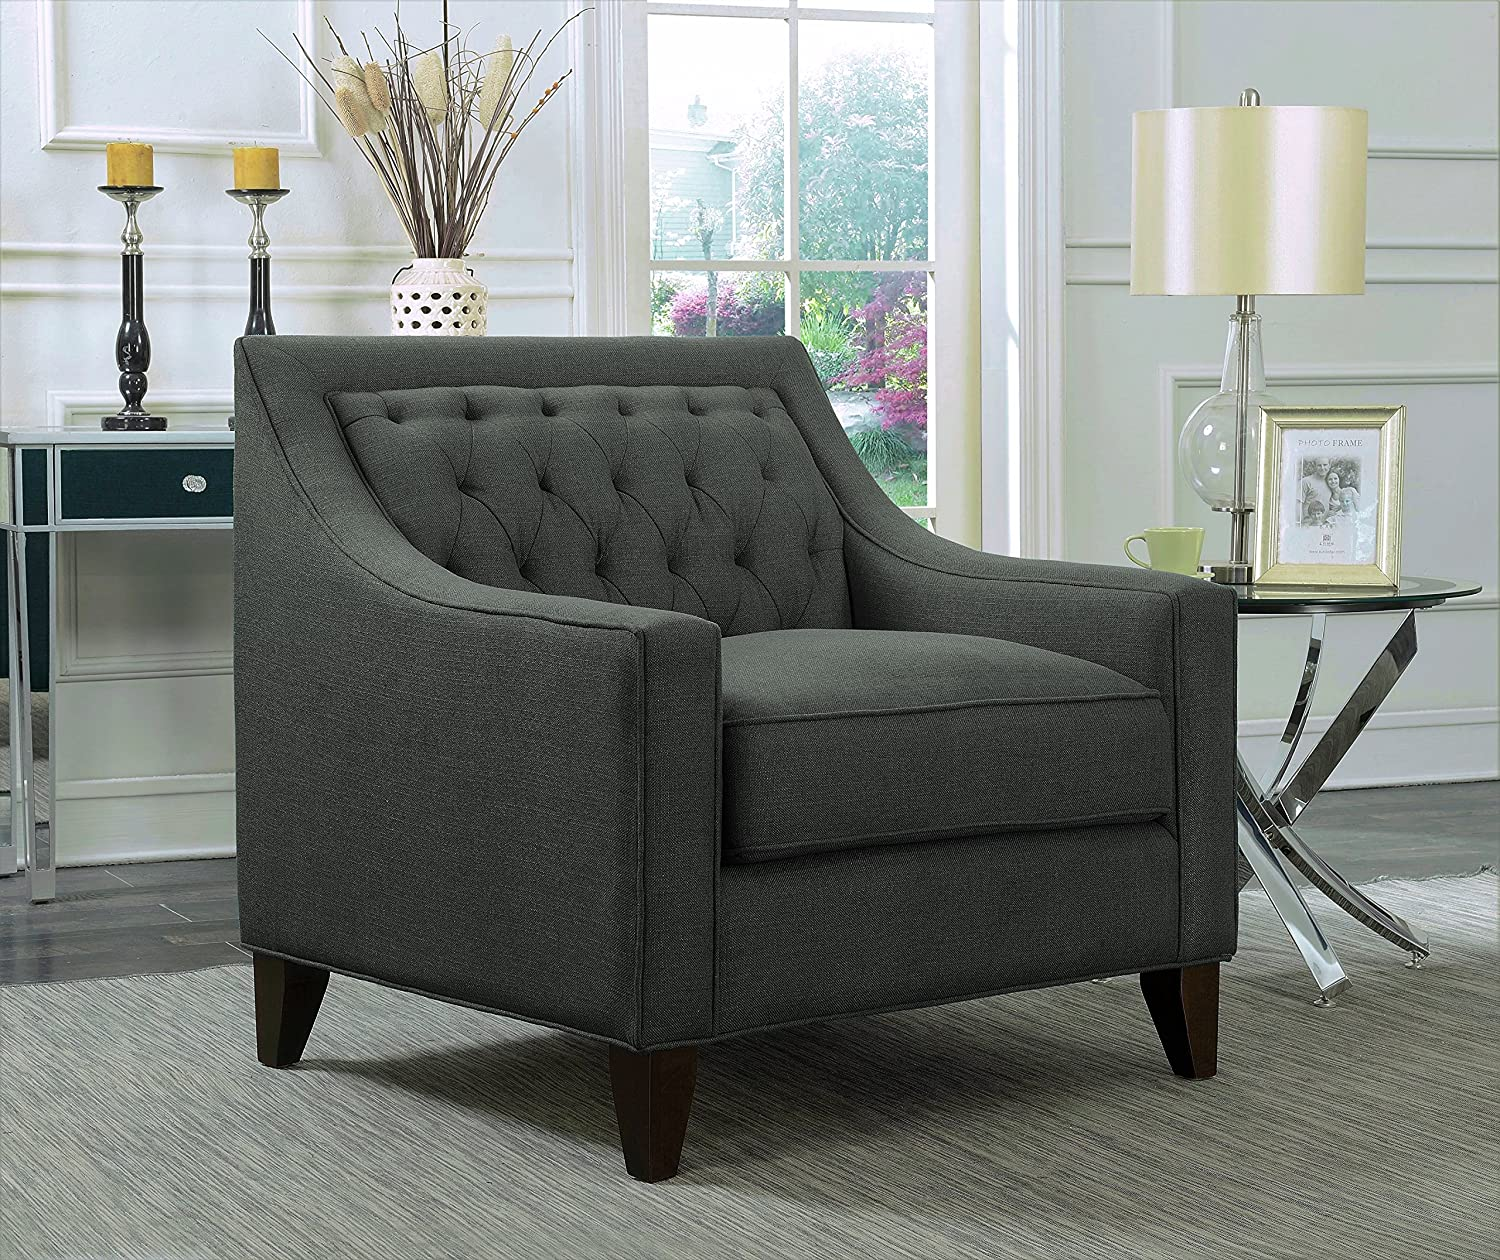 Iconic Home Aberdeen Linen Tufted Back Down Mix Modern Contemporary Club Chair, Grey